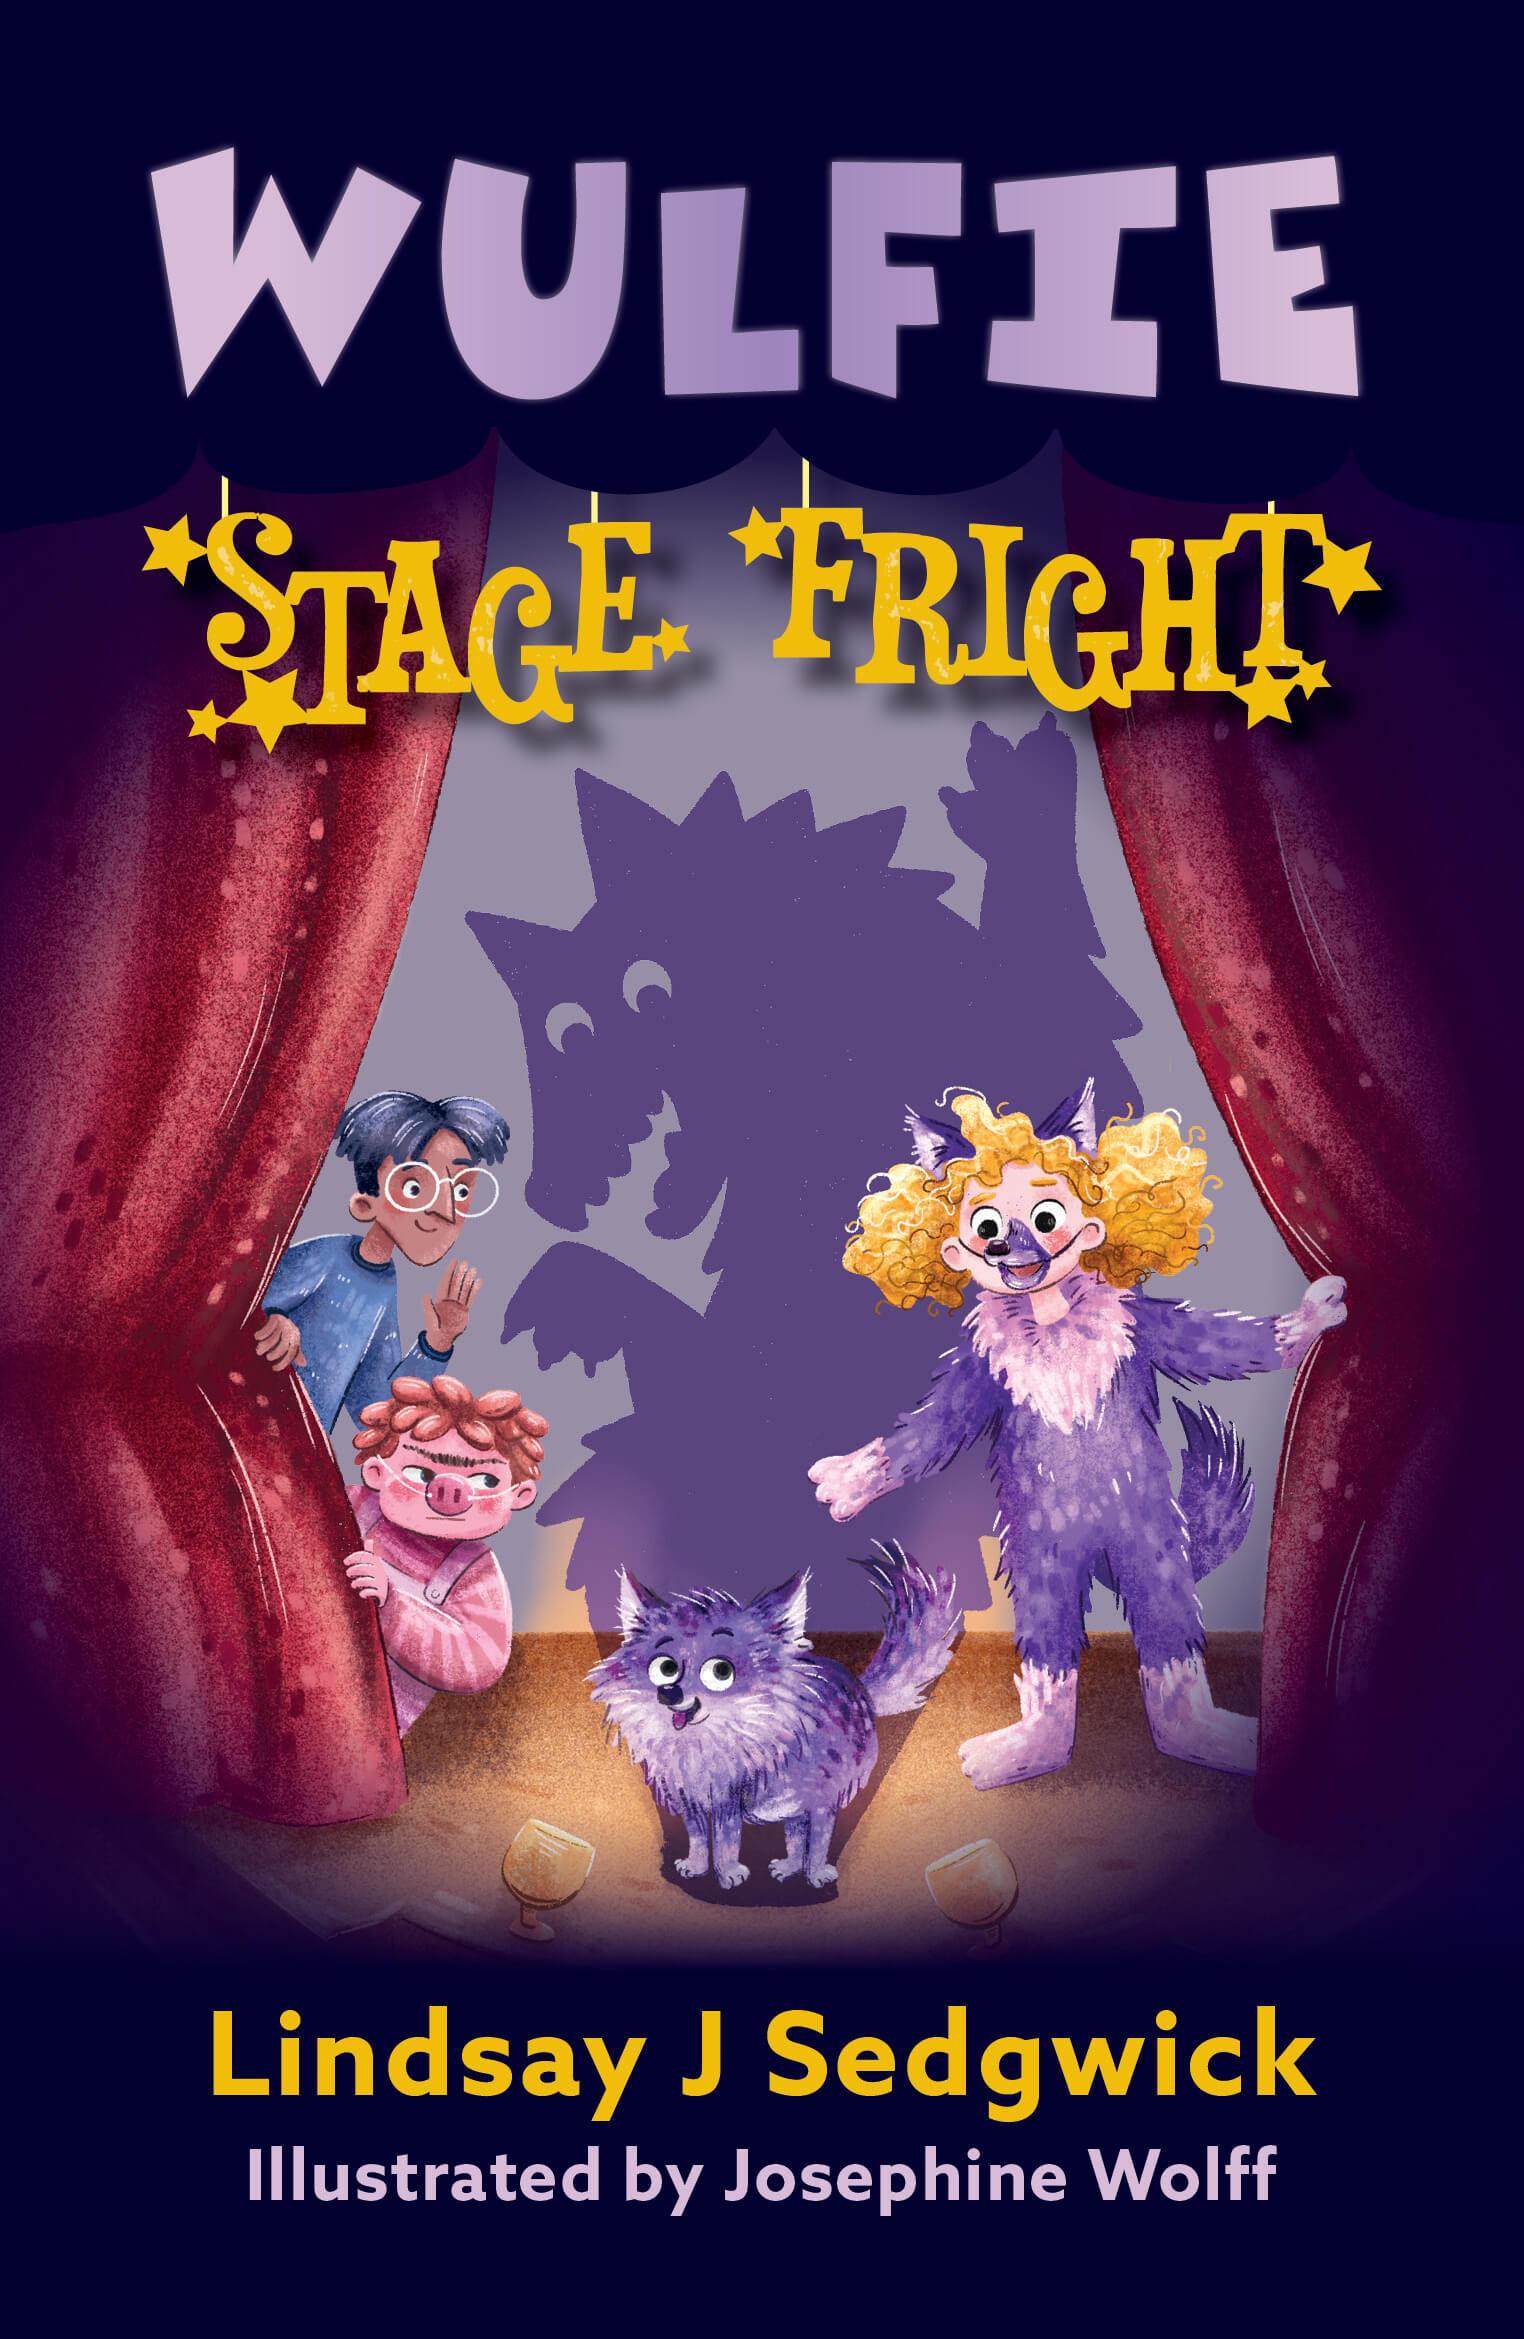 WULFIE STAGE FRIGHT by Lindsay J Sedgewick